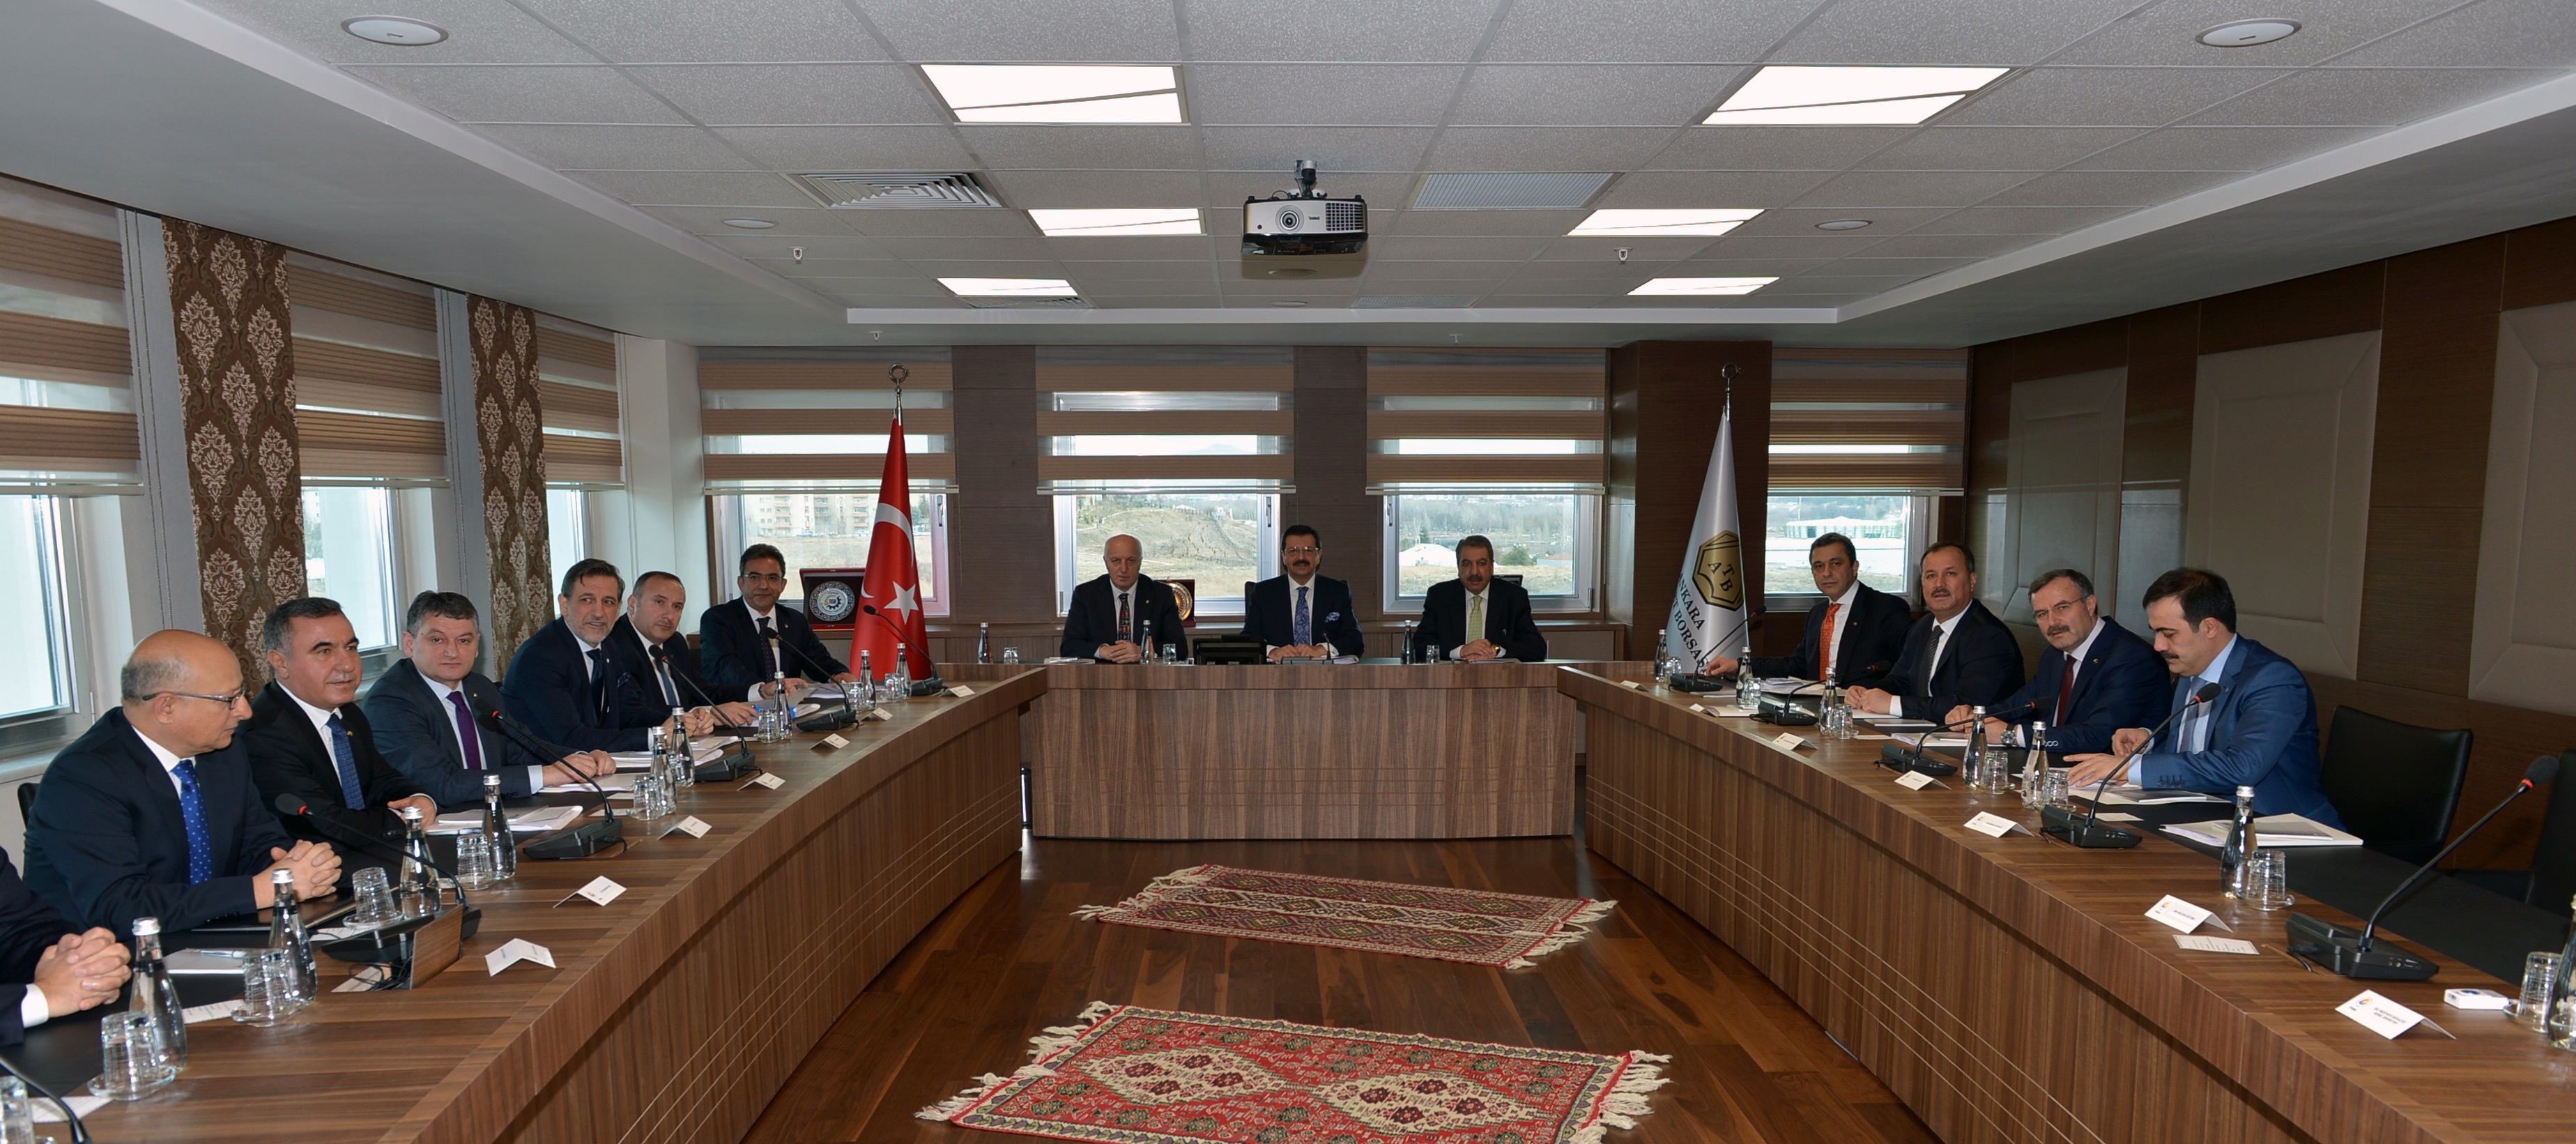 Selçuk ÖZTÜRK was elected to Board of TOBB